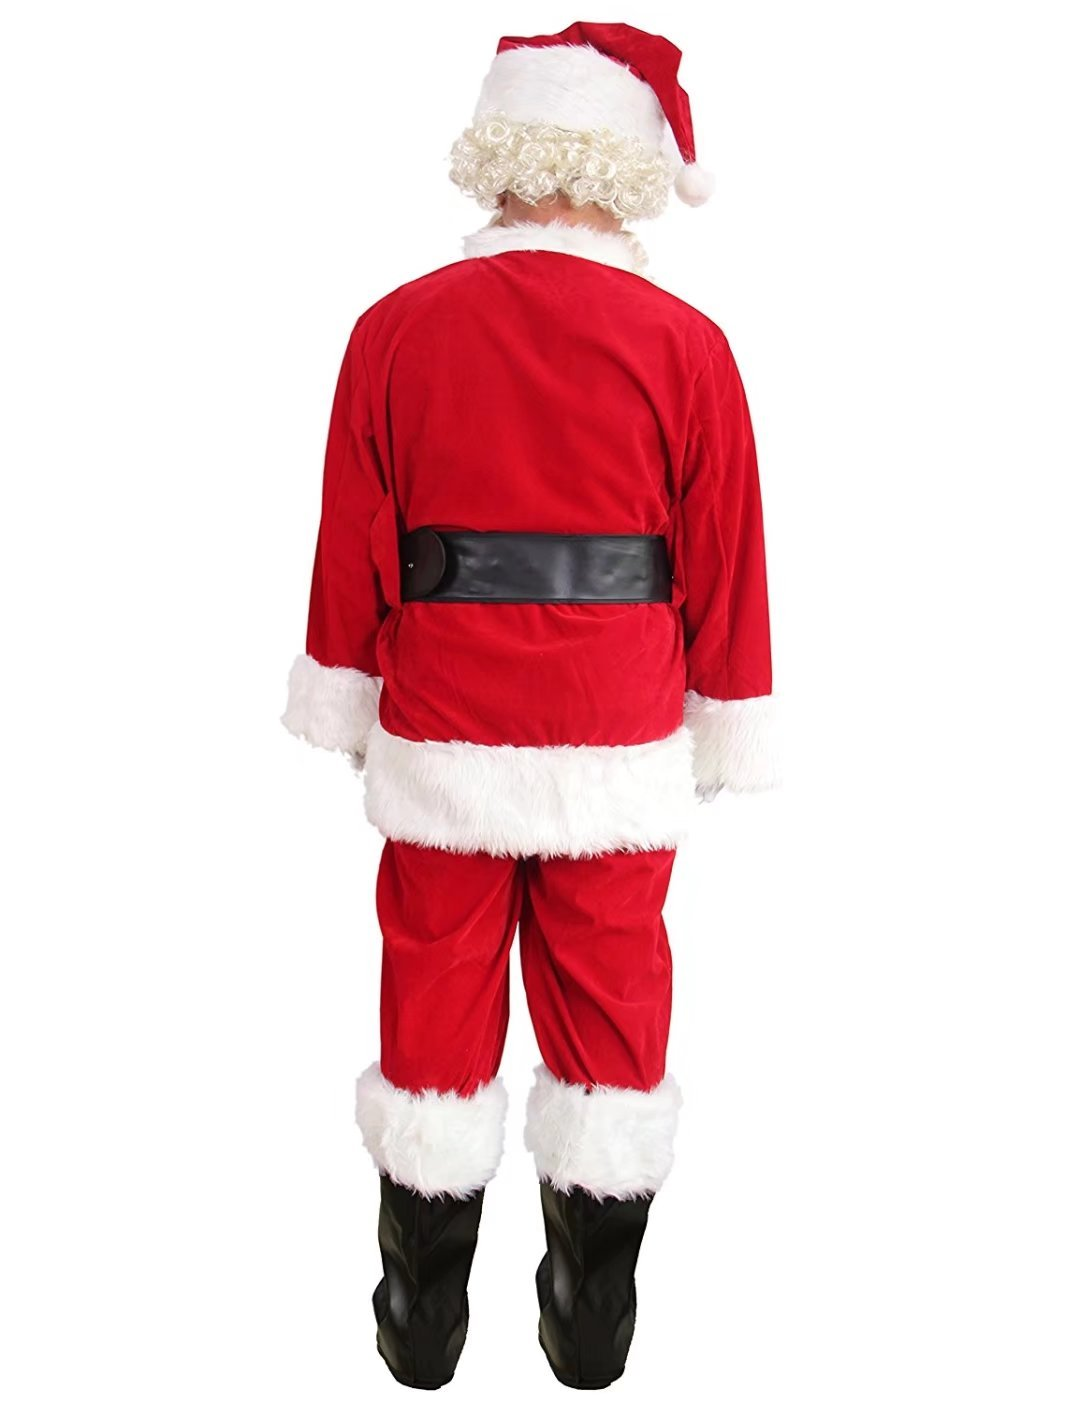 10 Pcs Complete Deluxe Velvet Christmas Santa Claus Costume Suit Adult (XL, Red) by Zollzirr (Image #4)